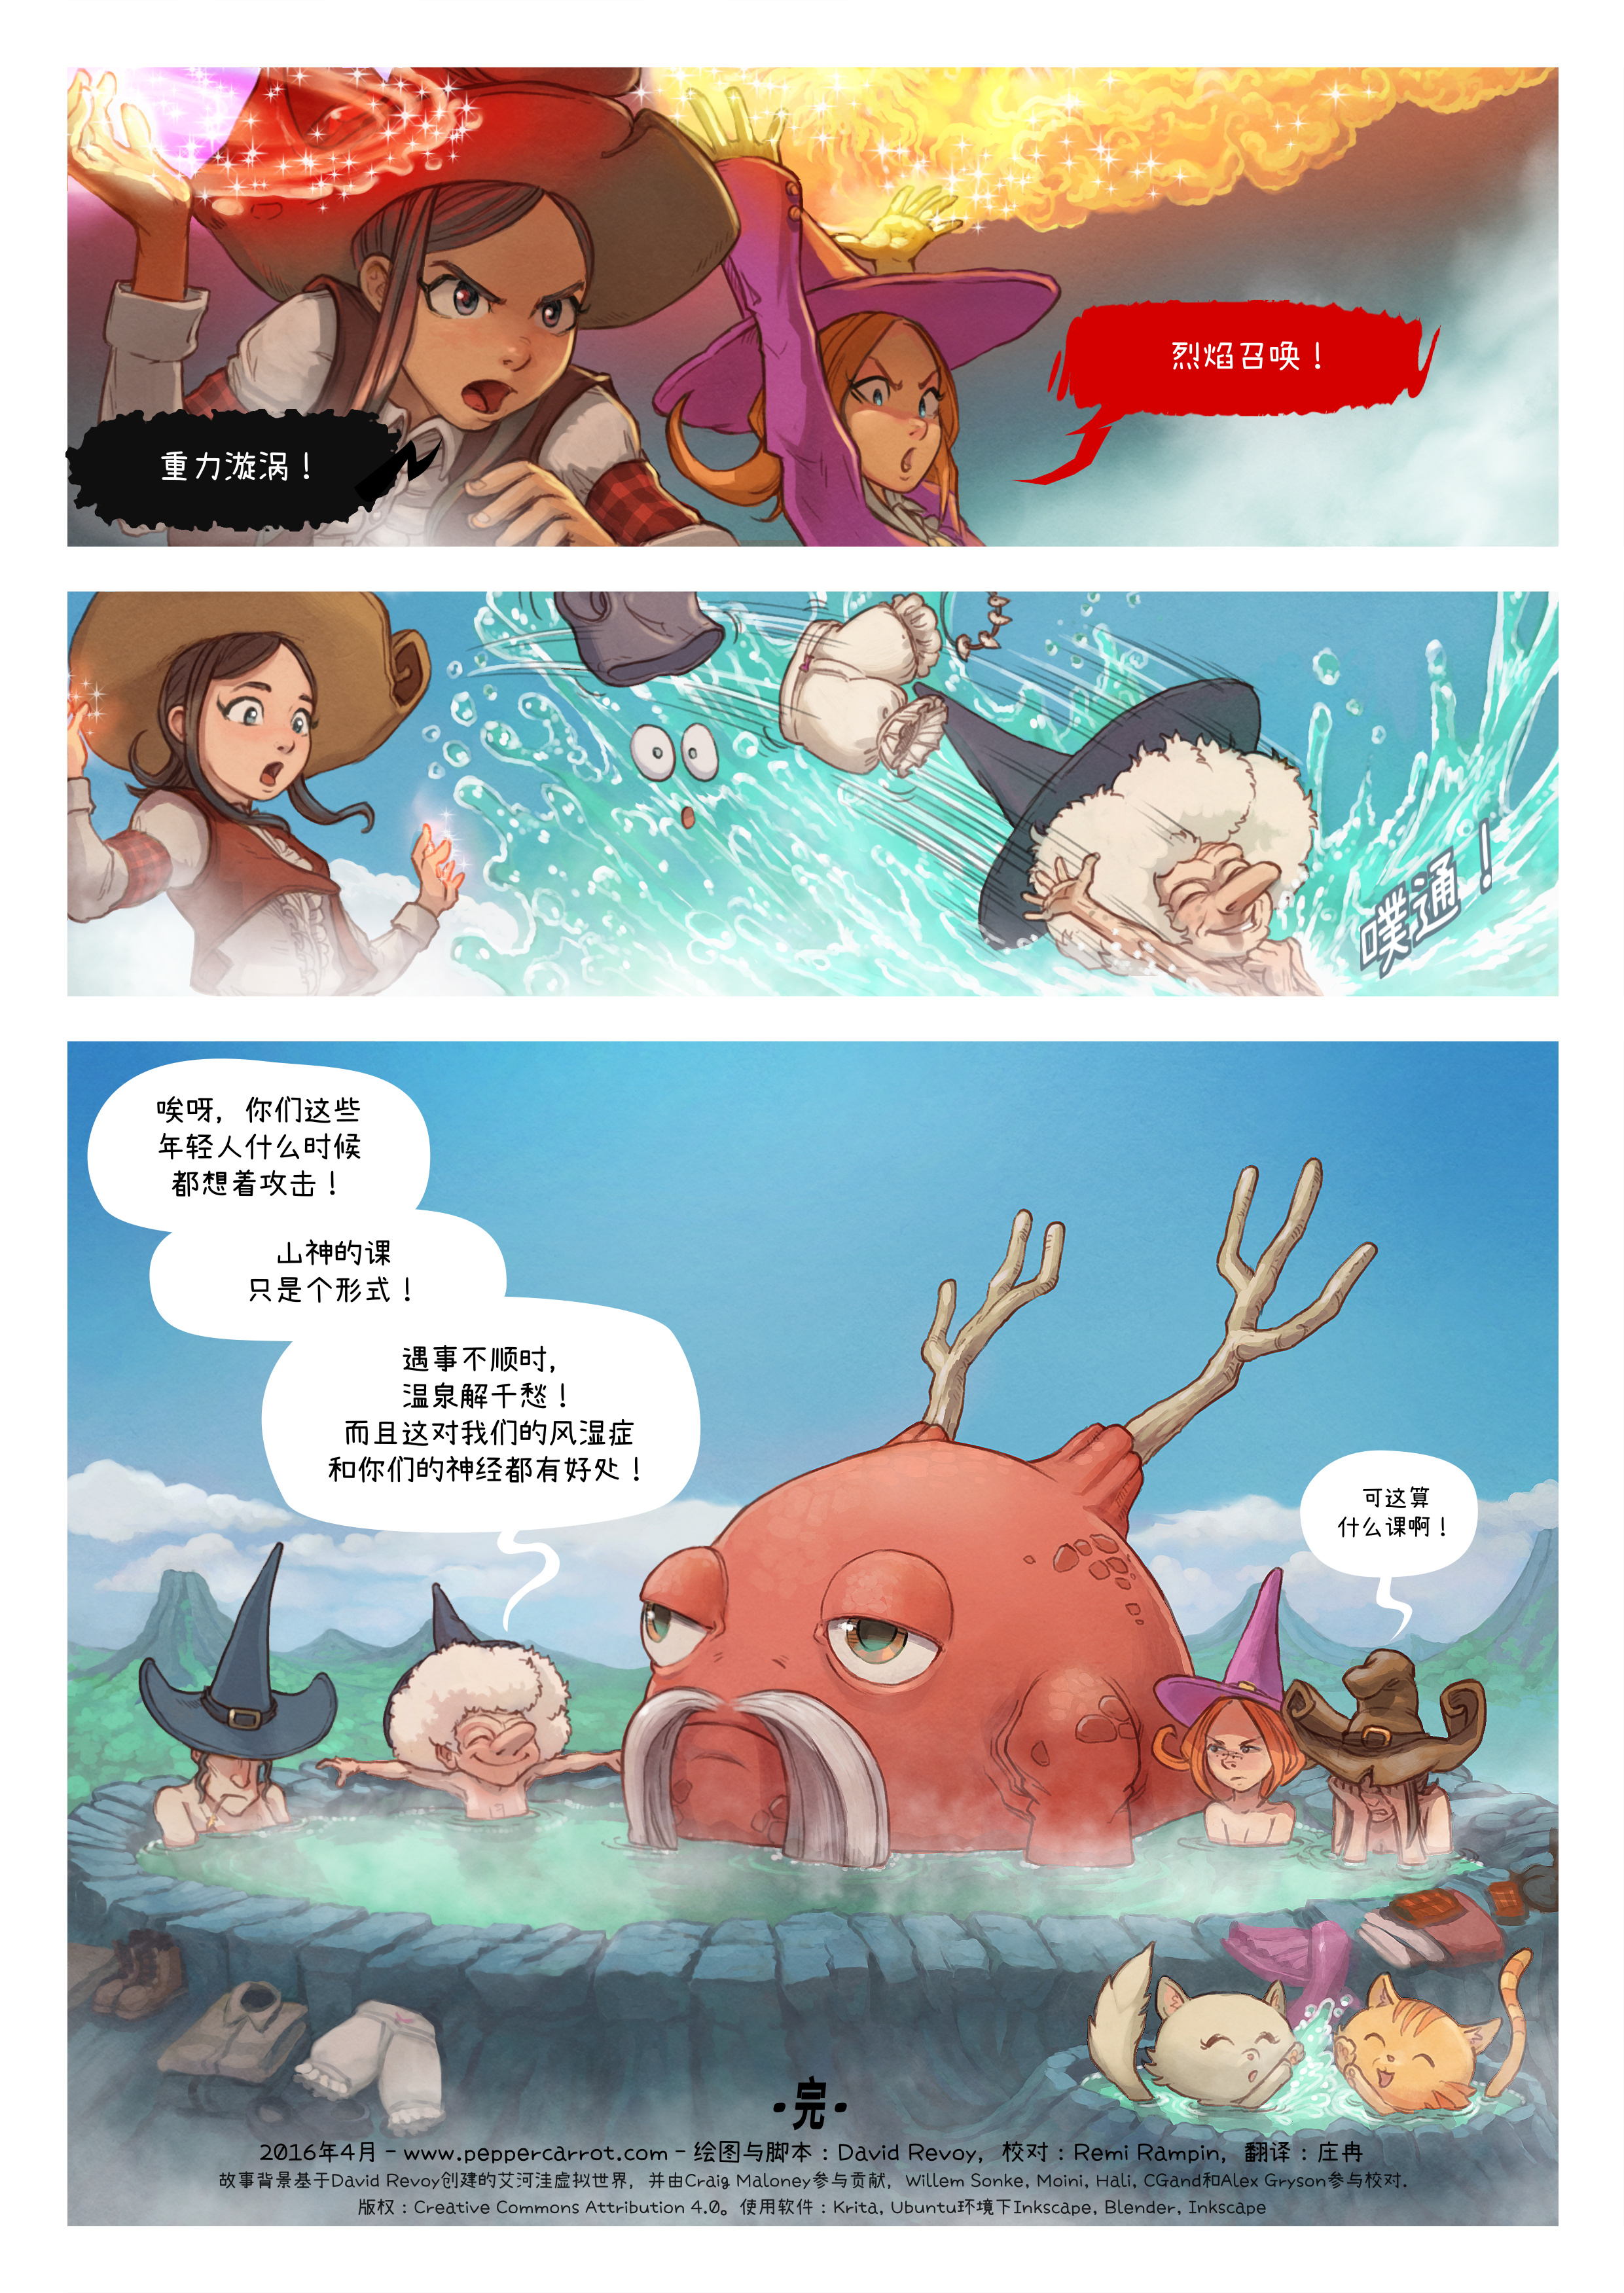 A webcomic page of Pepper&Carrot, 漫画全集 16 [cn], 页面 6